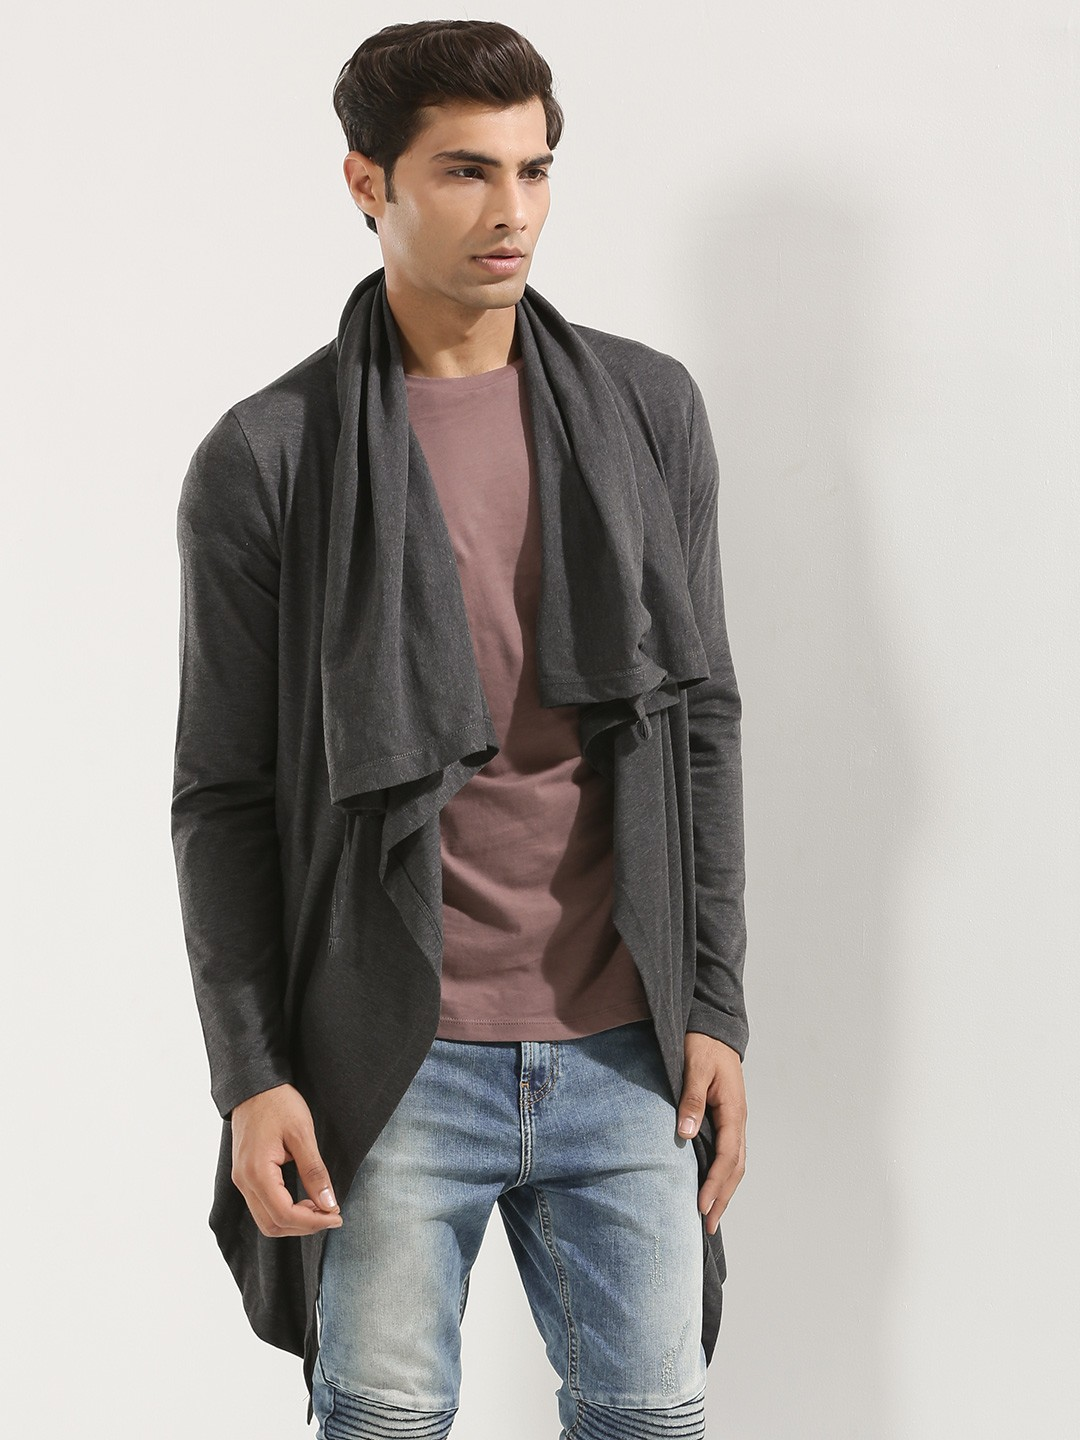 Cardigans - Buy from the latest collection of cardigan sweaters from top brands in India. Shop for cardigans for men, women & kids in various colours, fits & patterns. Discover popular styles like long cardigan, sweatshirts & more on the Myntra Online Store. % Original Products Easy Returns & Exchange Policy.